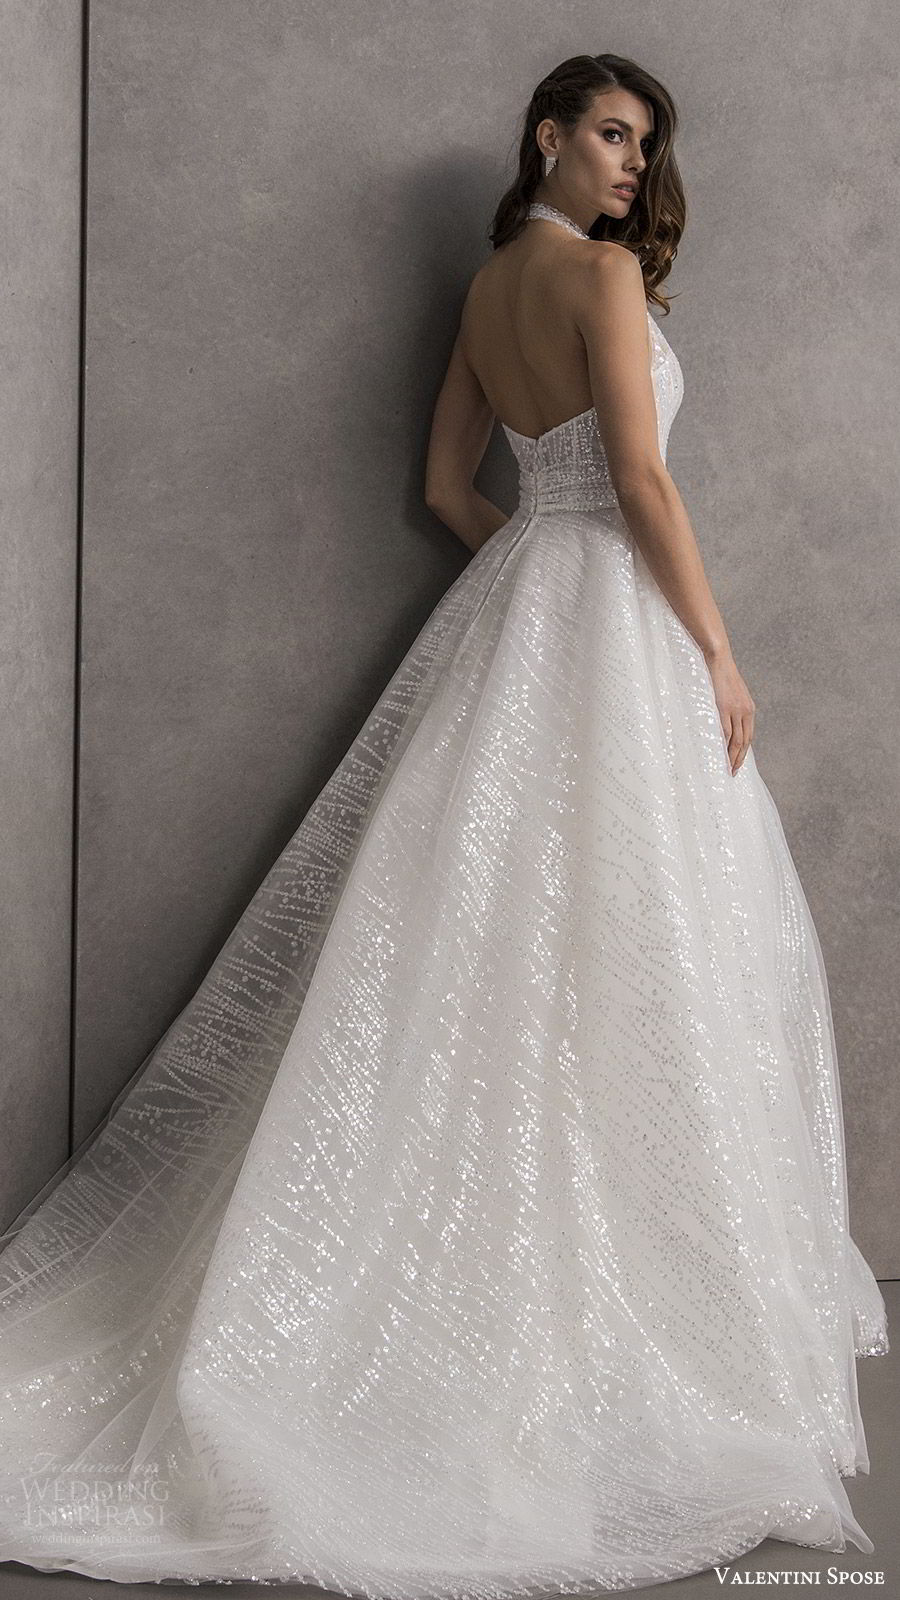 valentini spose spring 2020 bridal sleeveless halter neck deep v neckline fully embellished a line ball gown wedding dress (13) chapel train glitzy romantic glam bv